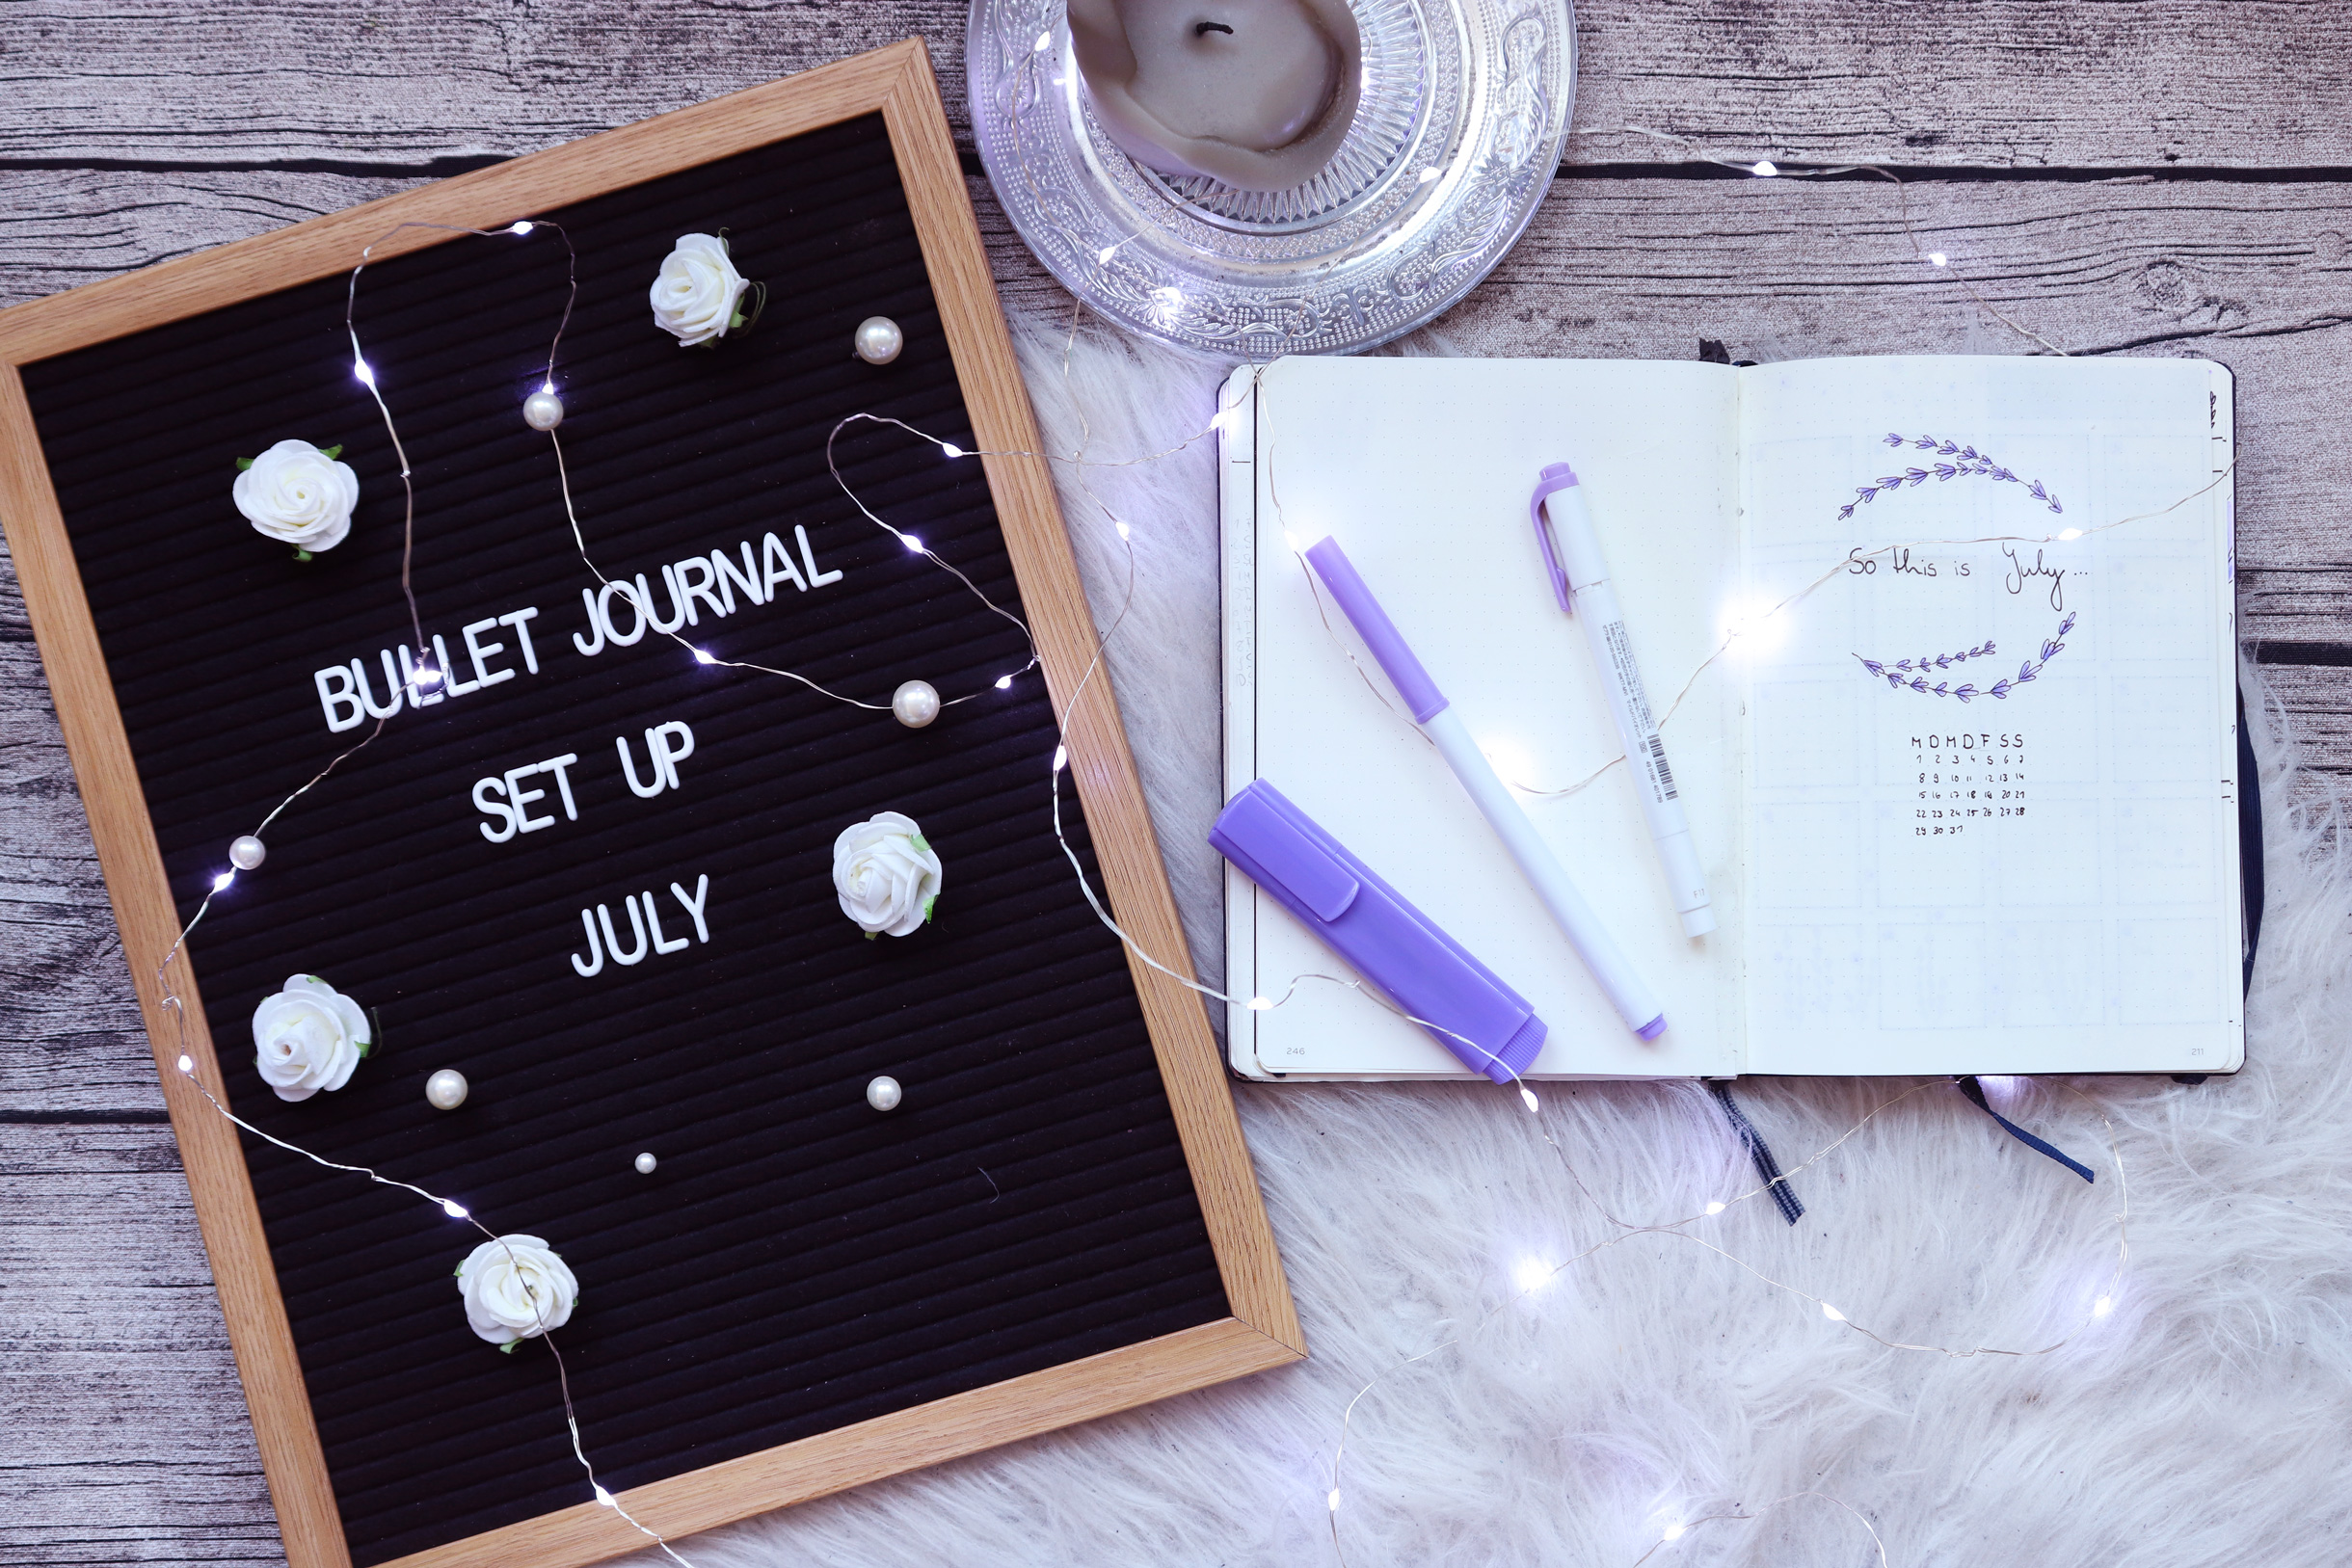 Titelbild des Blogposts, Bullet Journal Set Up Juli mit Titelseite Juli und Journal, Lila stiften